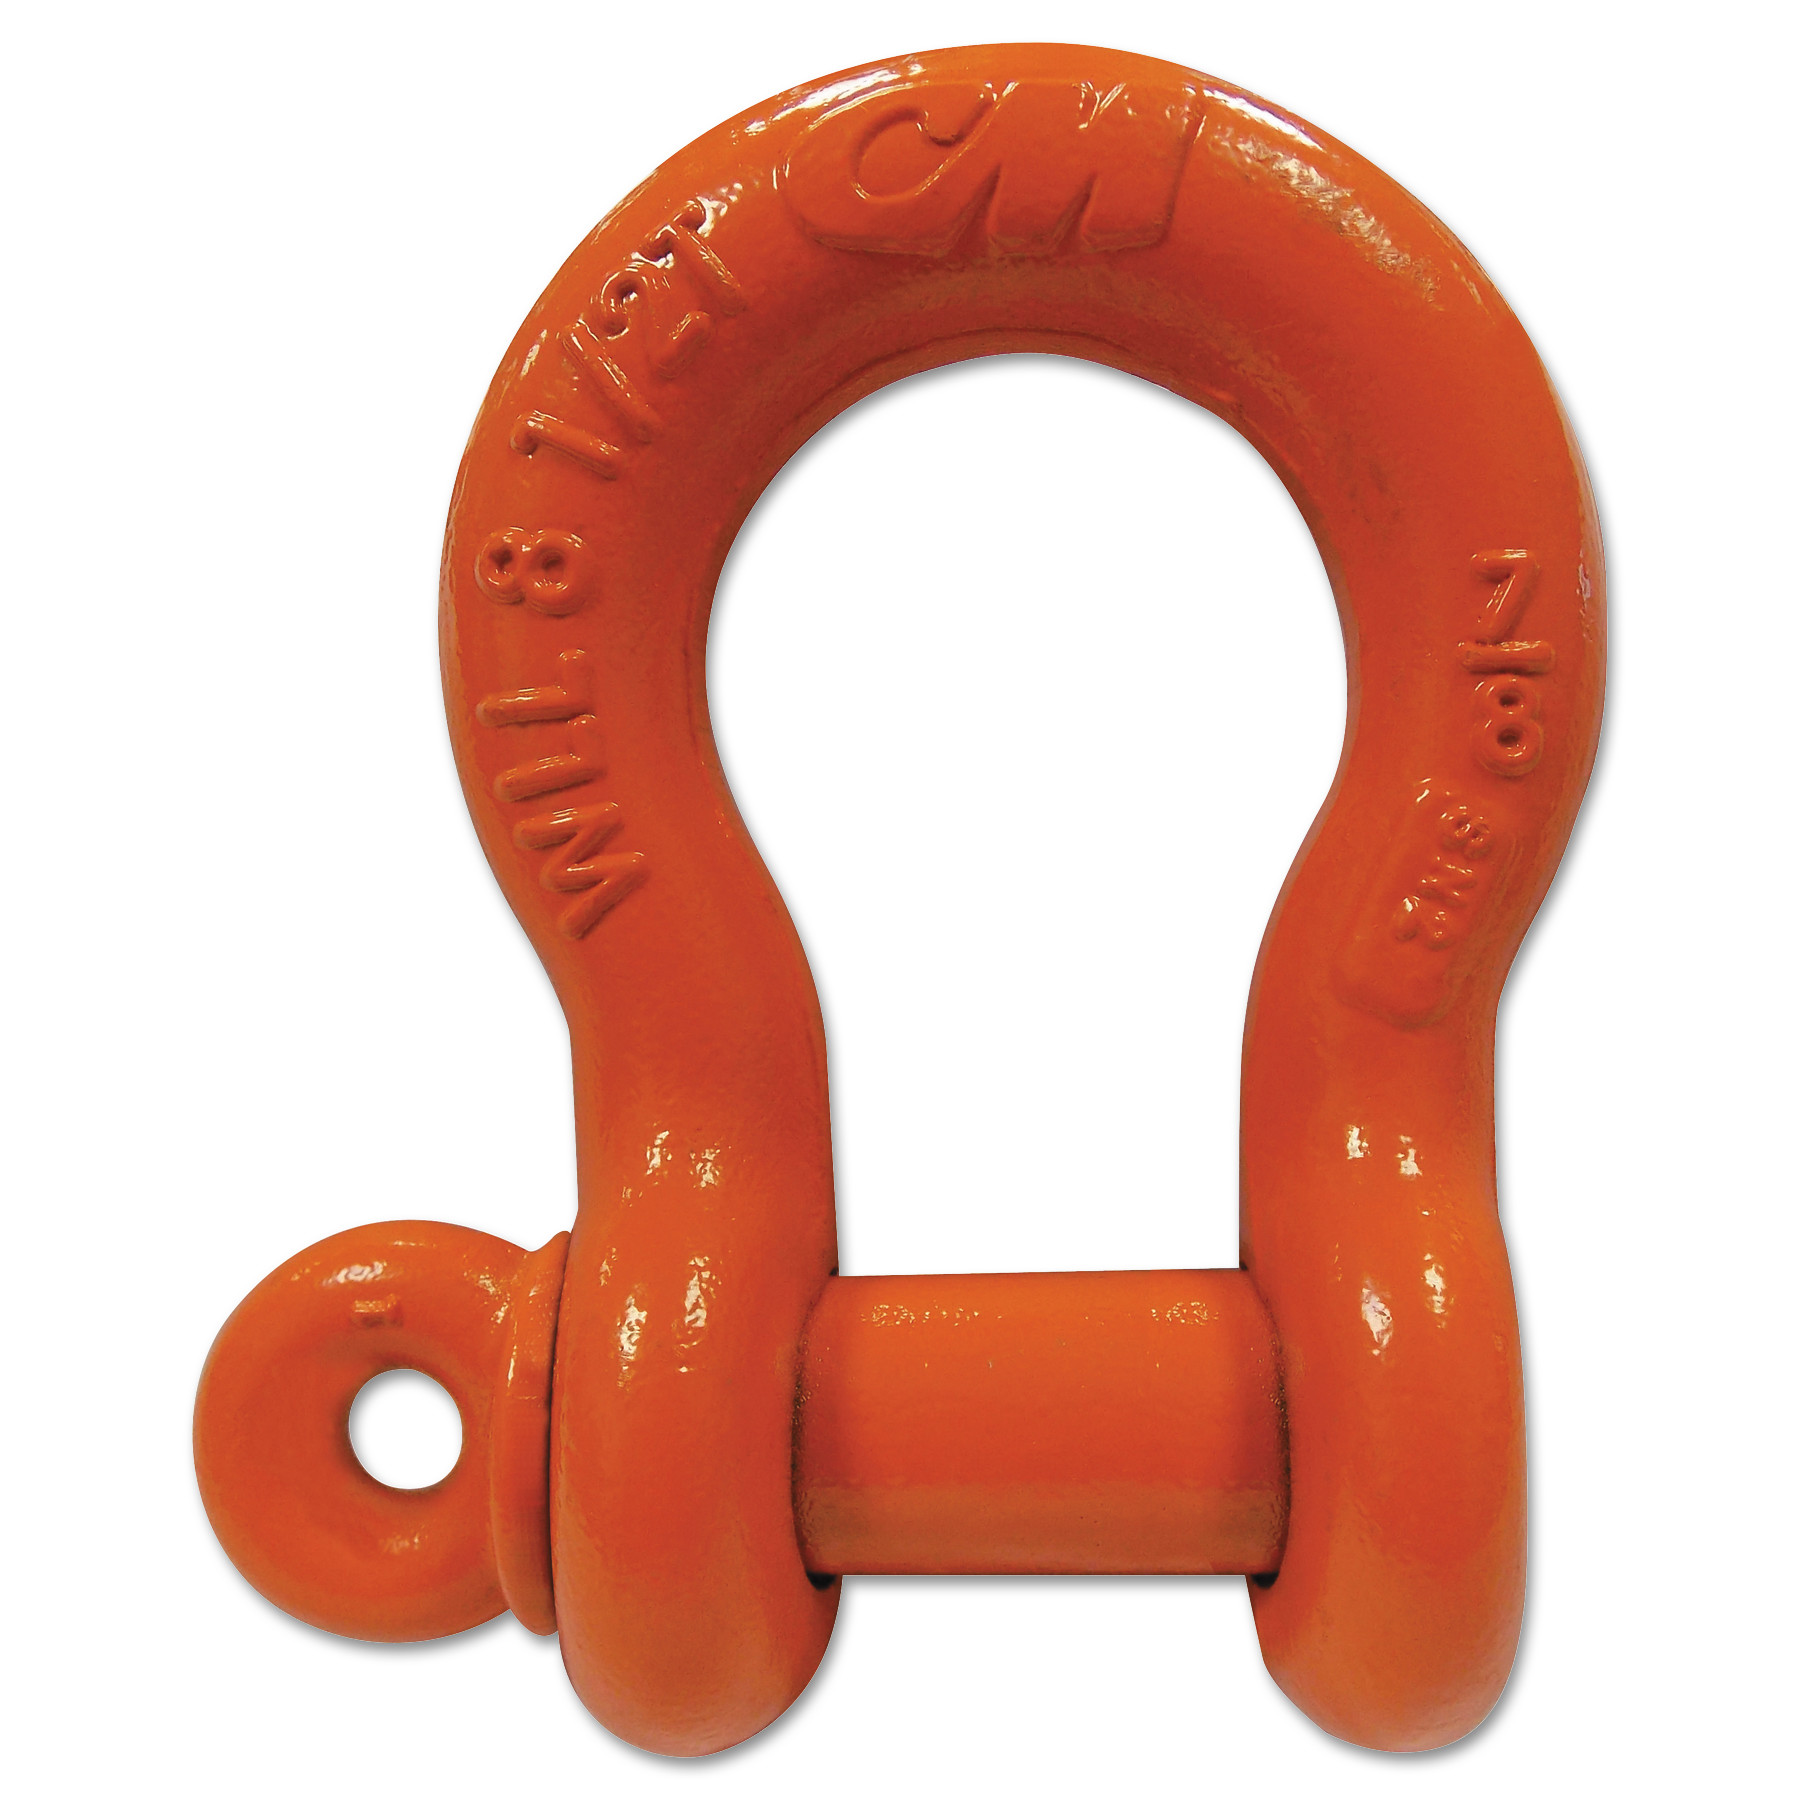 CM Columbus McKinnon Screw Pin Anchor Shackles, 1 1/4 in Bail Size, 3.3 Tons, Orange Paint